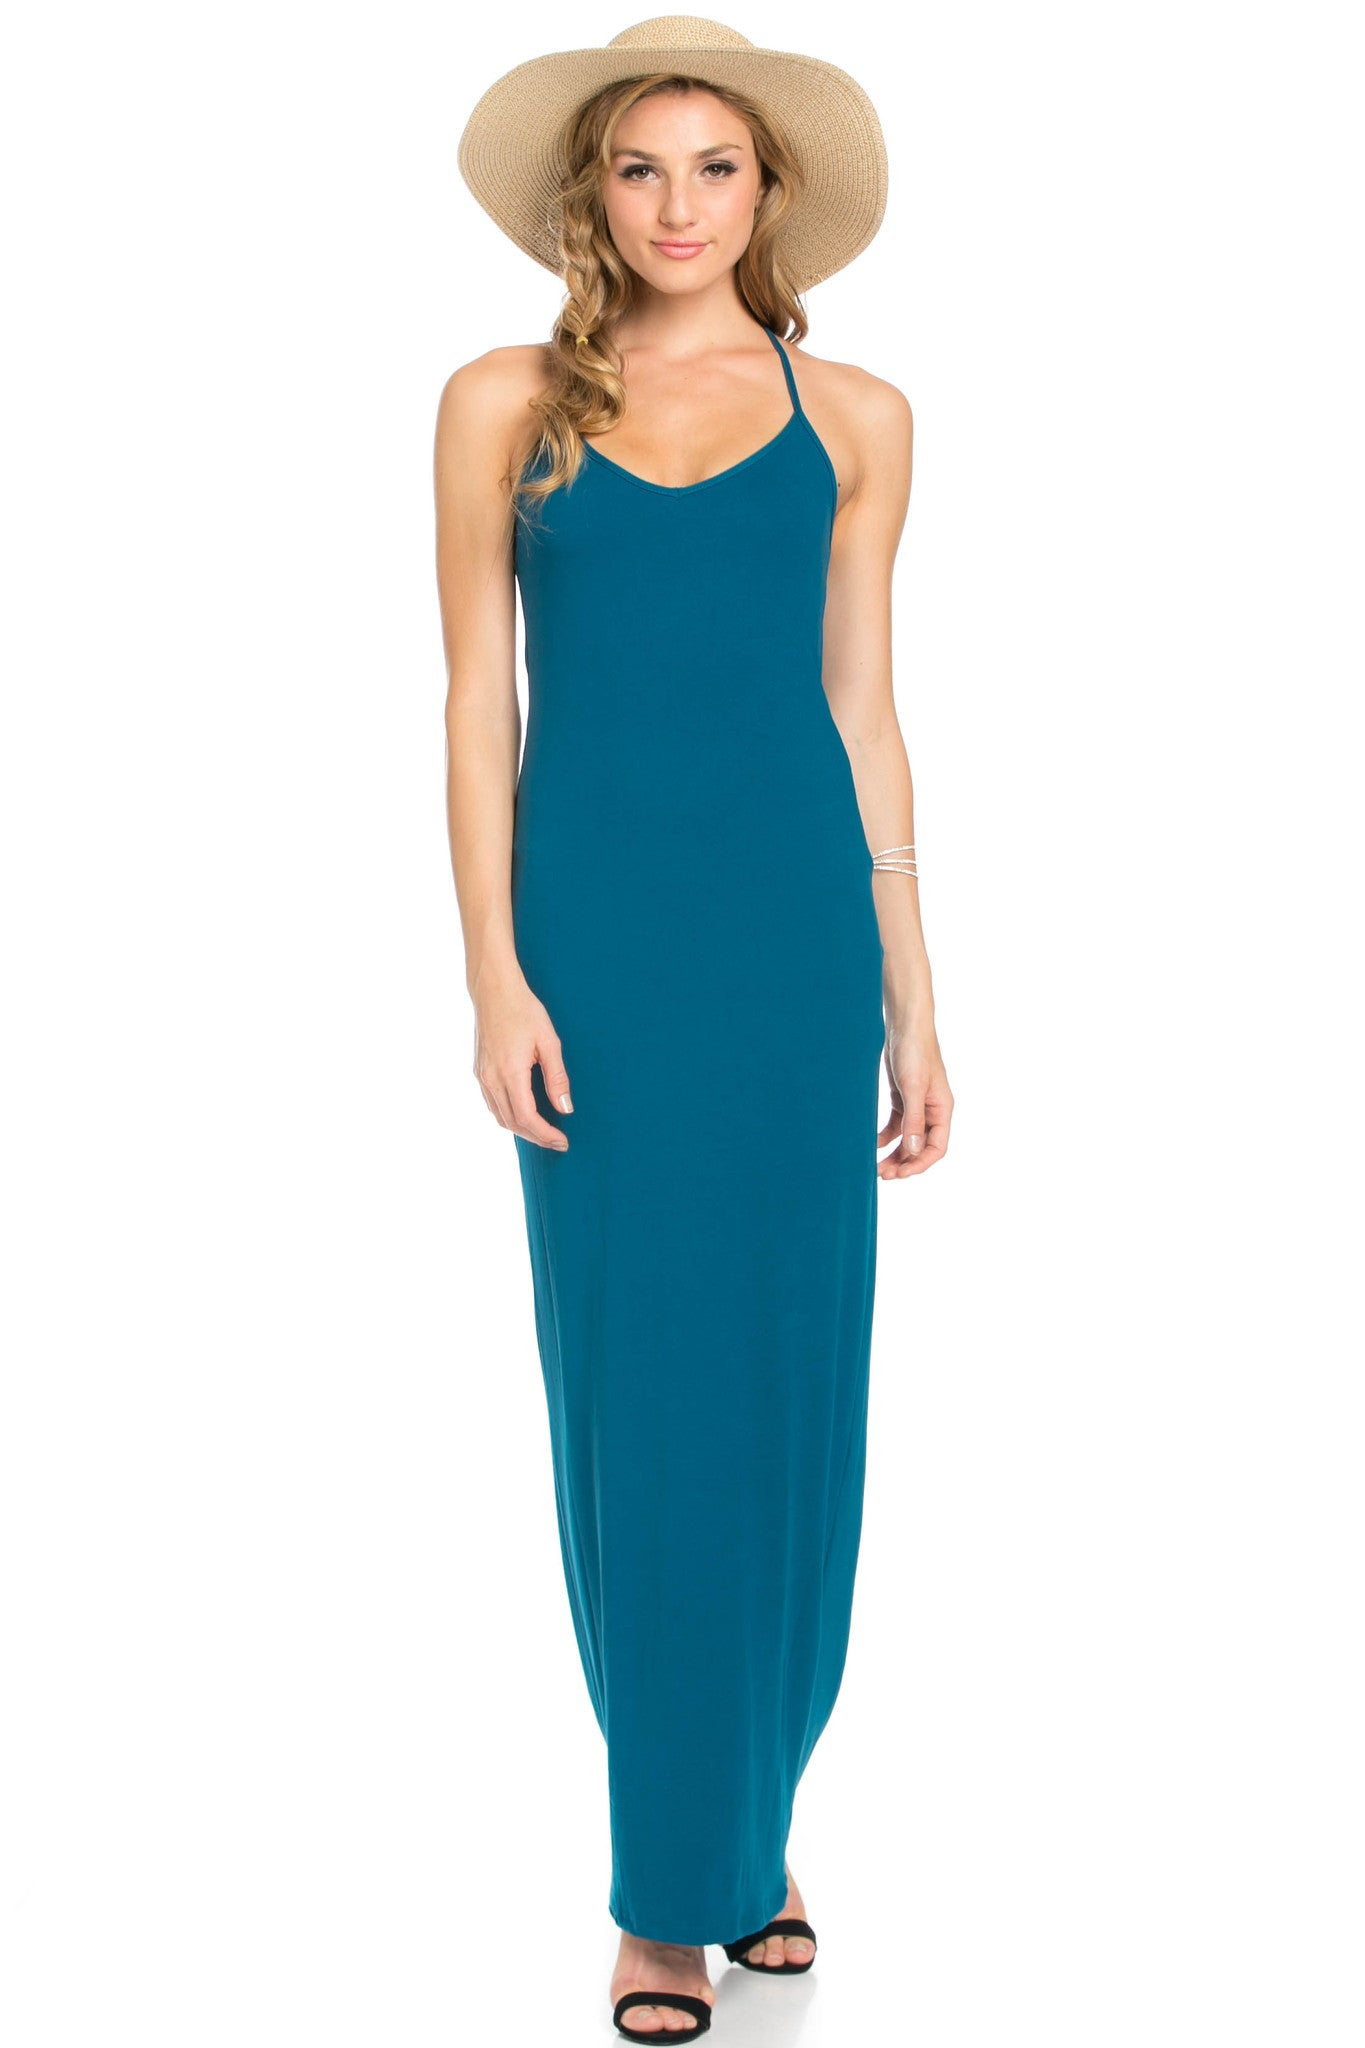 Micro Suede Teal Maxi Dress - Dresses - My Yuccie - 6